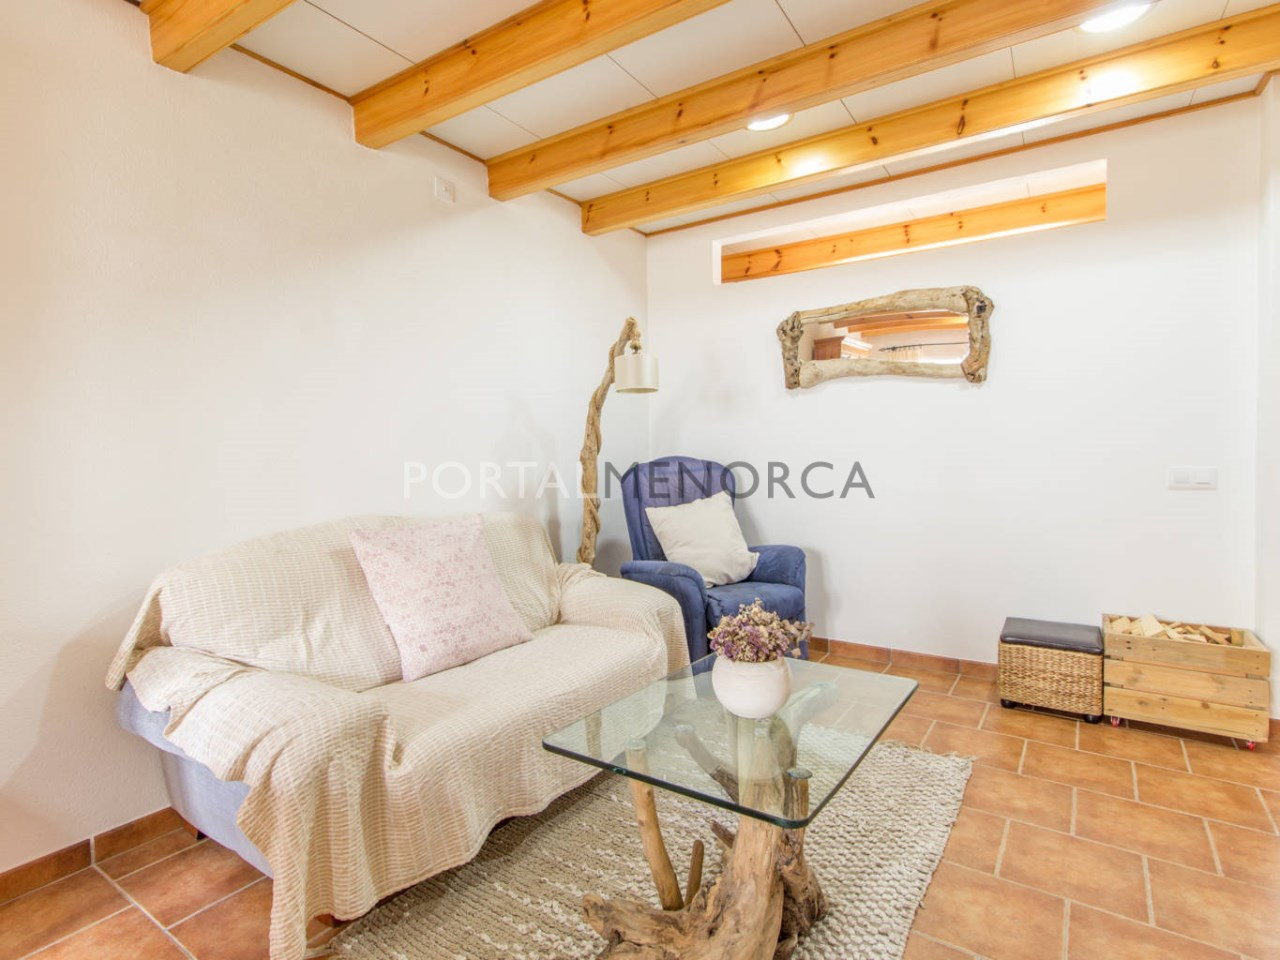 House with patio and terrace for sale in Menorca